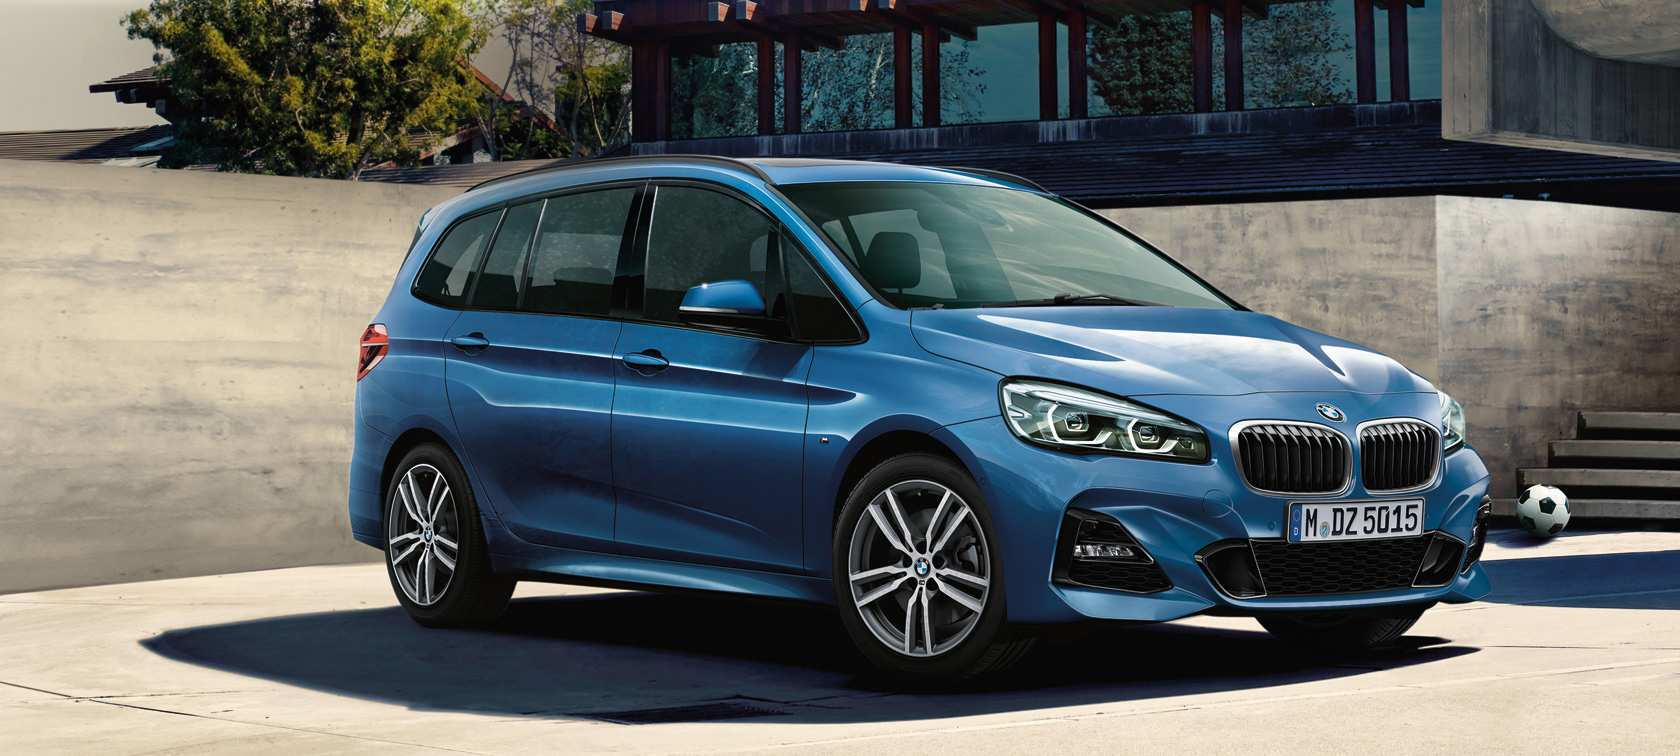 55 New 2019 Bmw Active Tourer Images